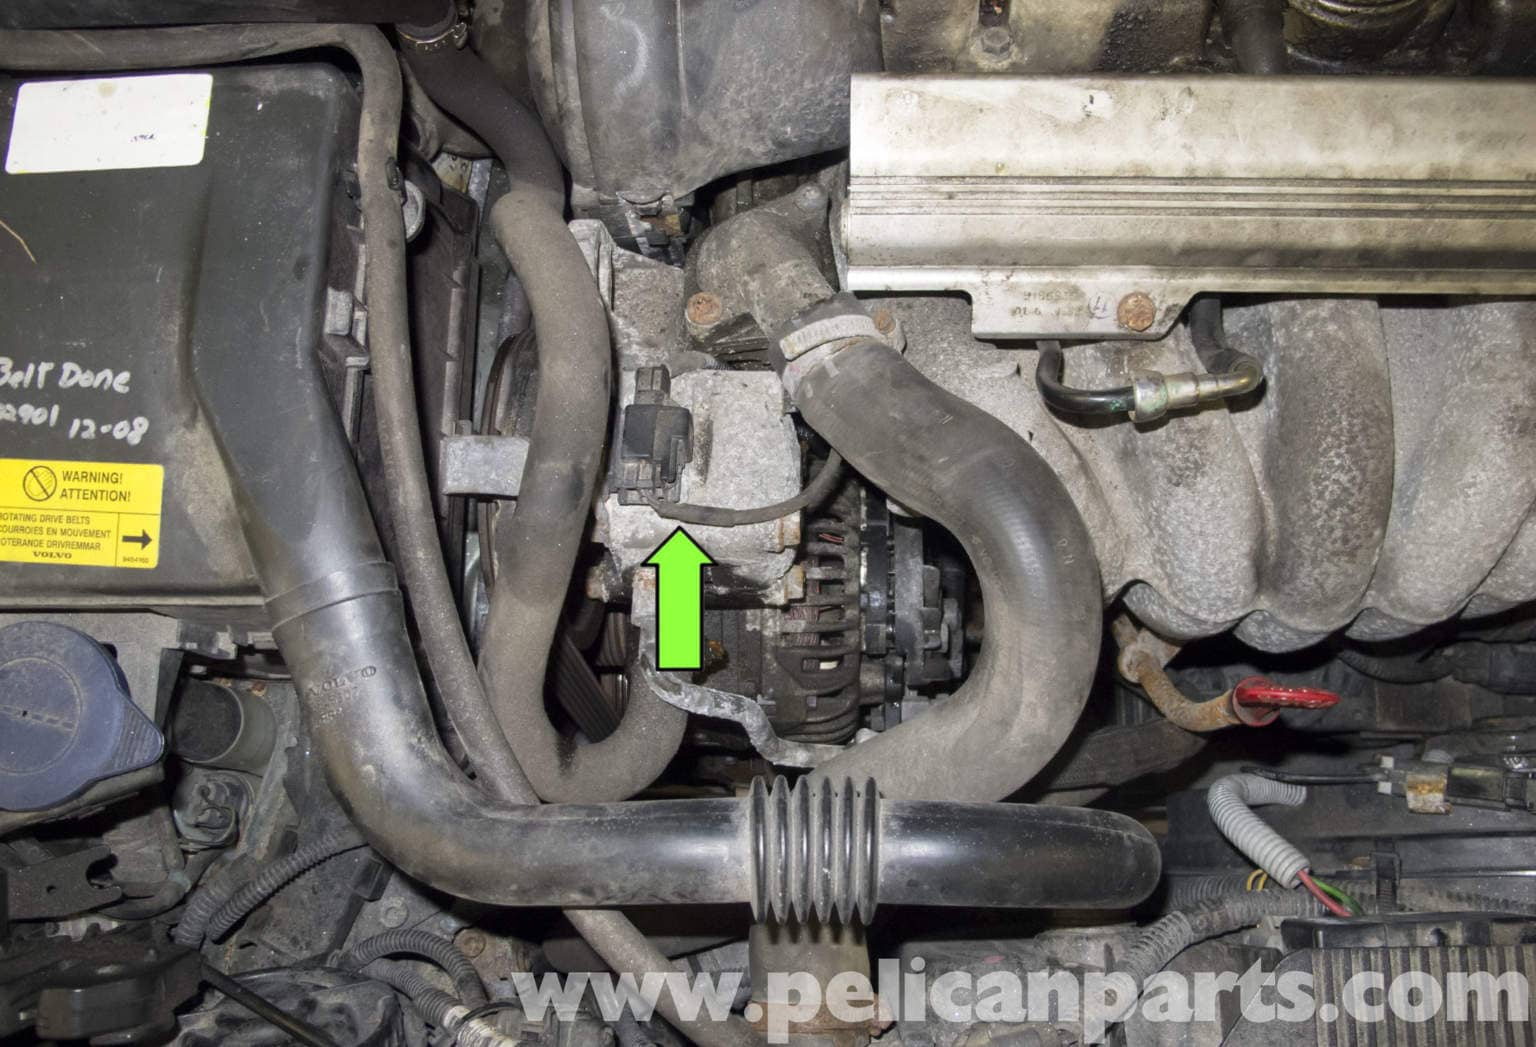 Volvo V70 Power Steering Pump Replacement (1998-2007) - Pelican Parts DIY Maintenance Article